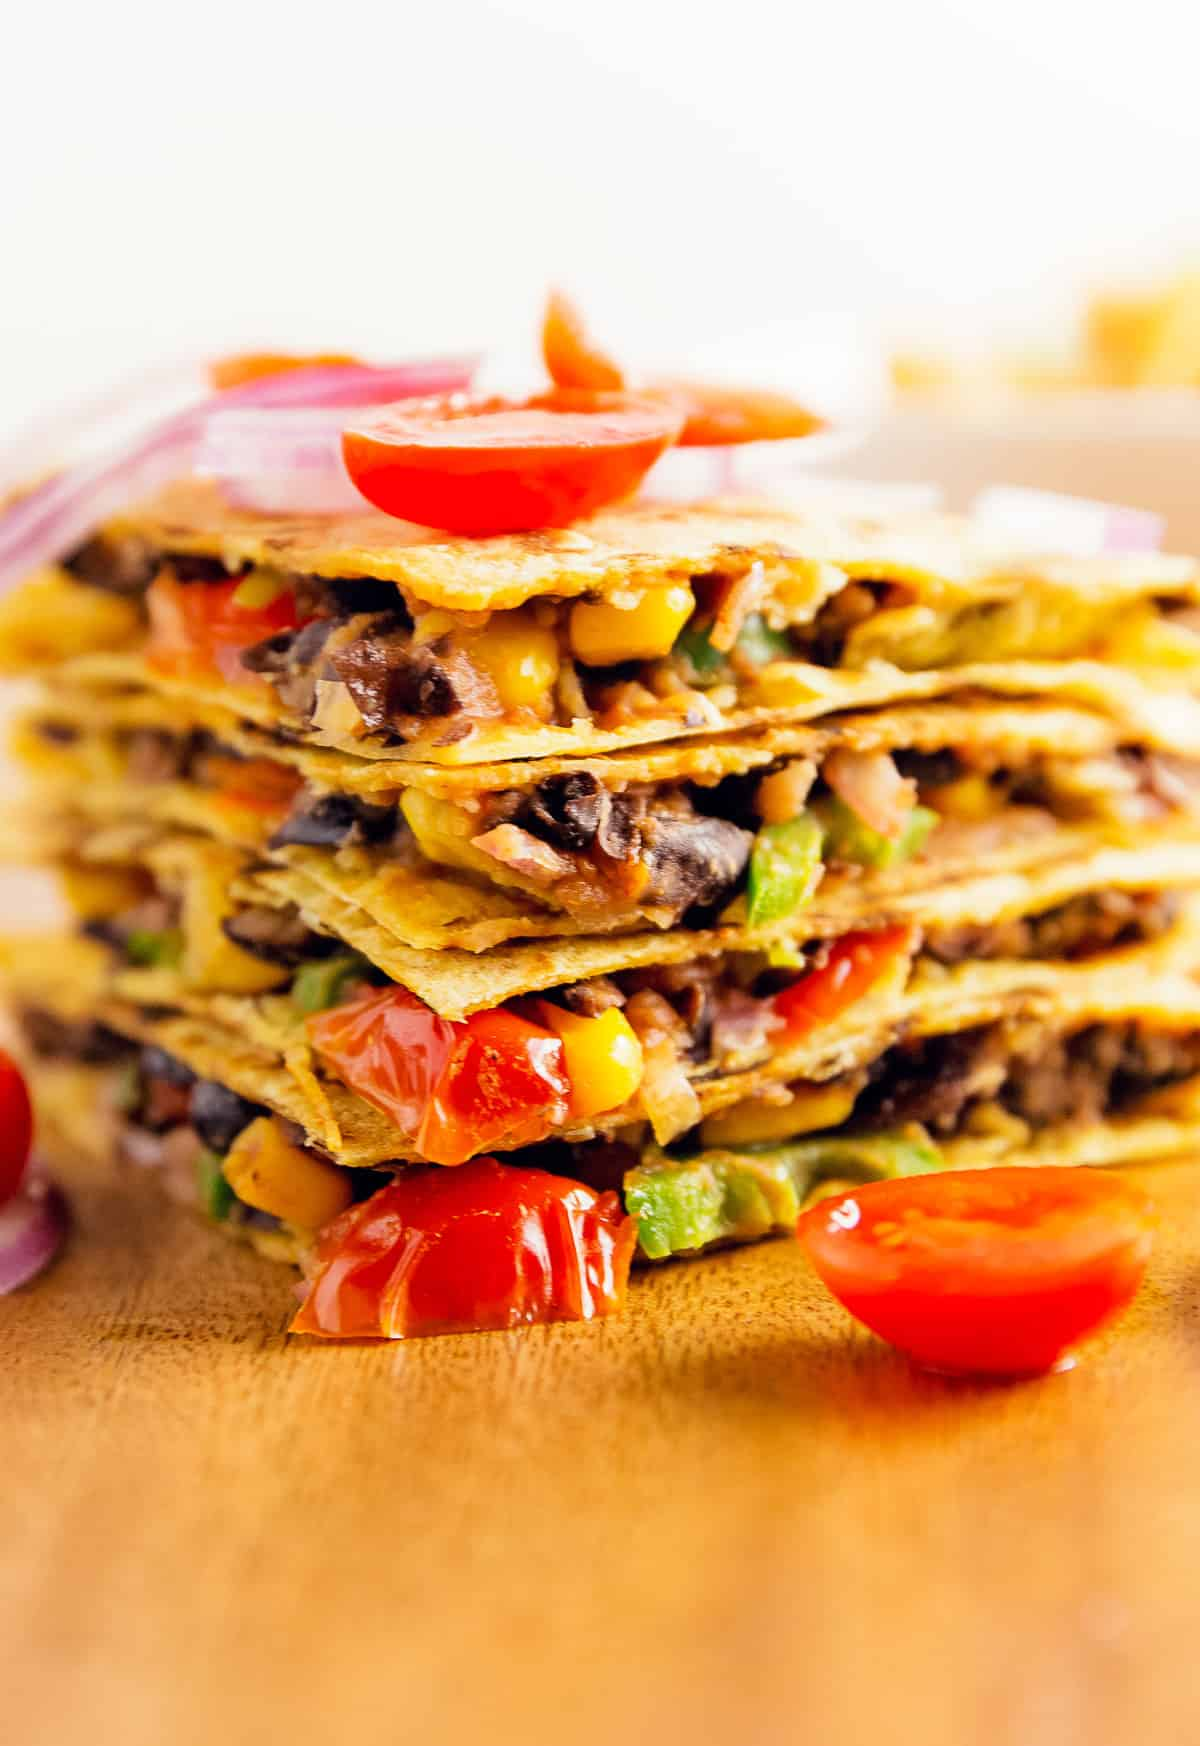 Quesadillas monkey and me kitchen adventures quesadilla spicy black beans dairy free quesadilla whole food plant based quesadilla forumfinder Image collections